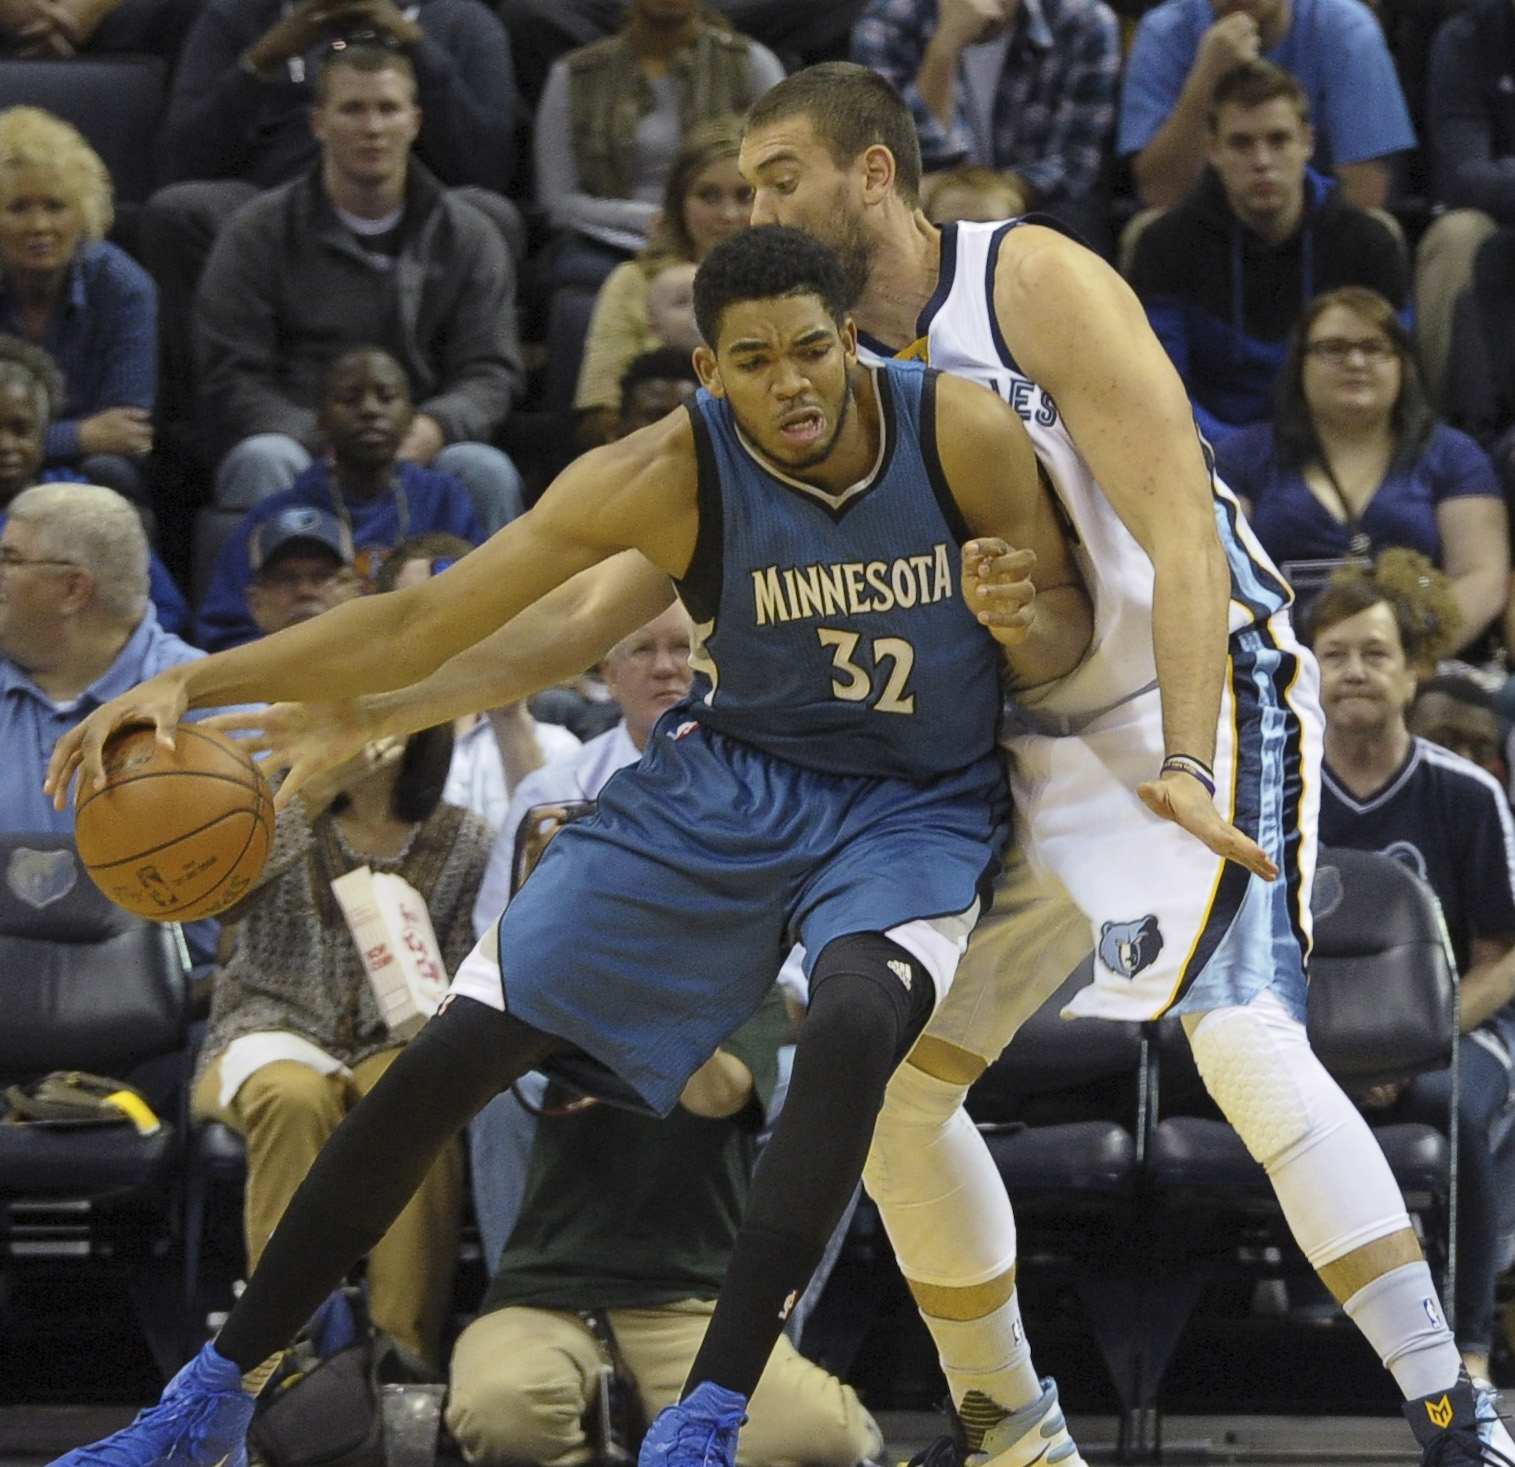 Oct 18, 2015; Memphis, TN, USA; Minnesota Timberwolves center Karl-Anthony Towns (32) handles the ball against Memphis Grizzlies center Marc Gasol (33) during the game at FedExForum. Mandatory Credit: Justin Ford-USA TODAY Sports